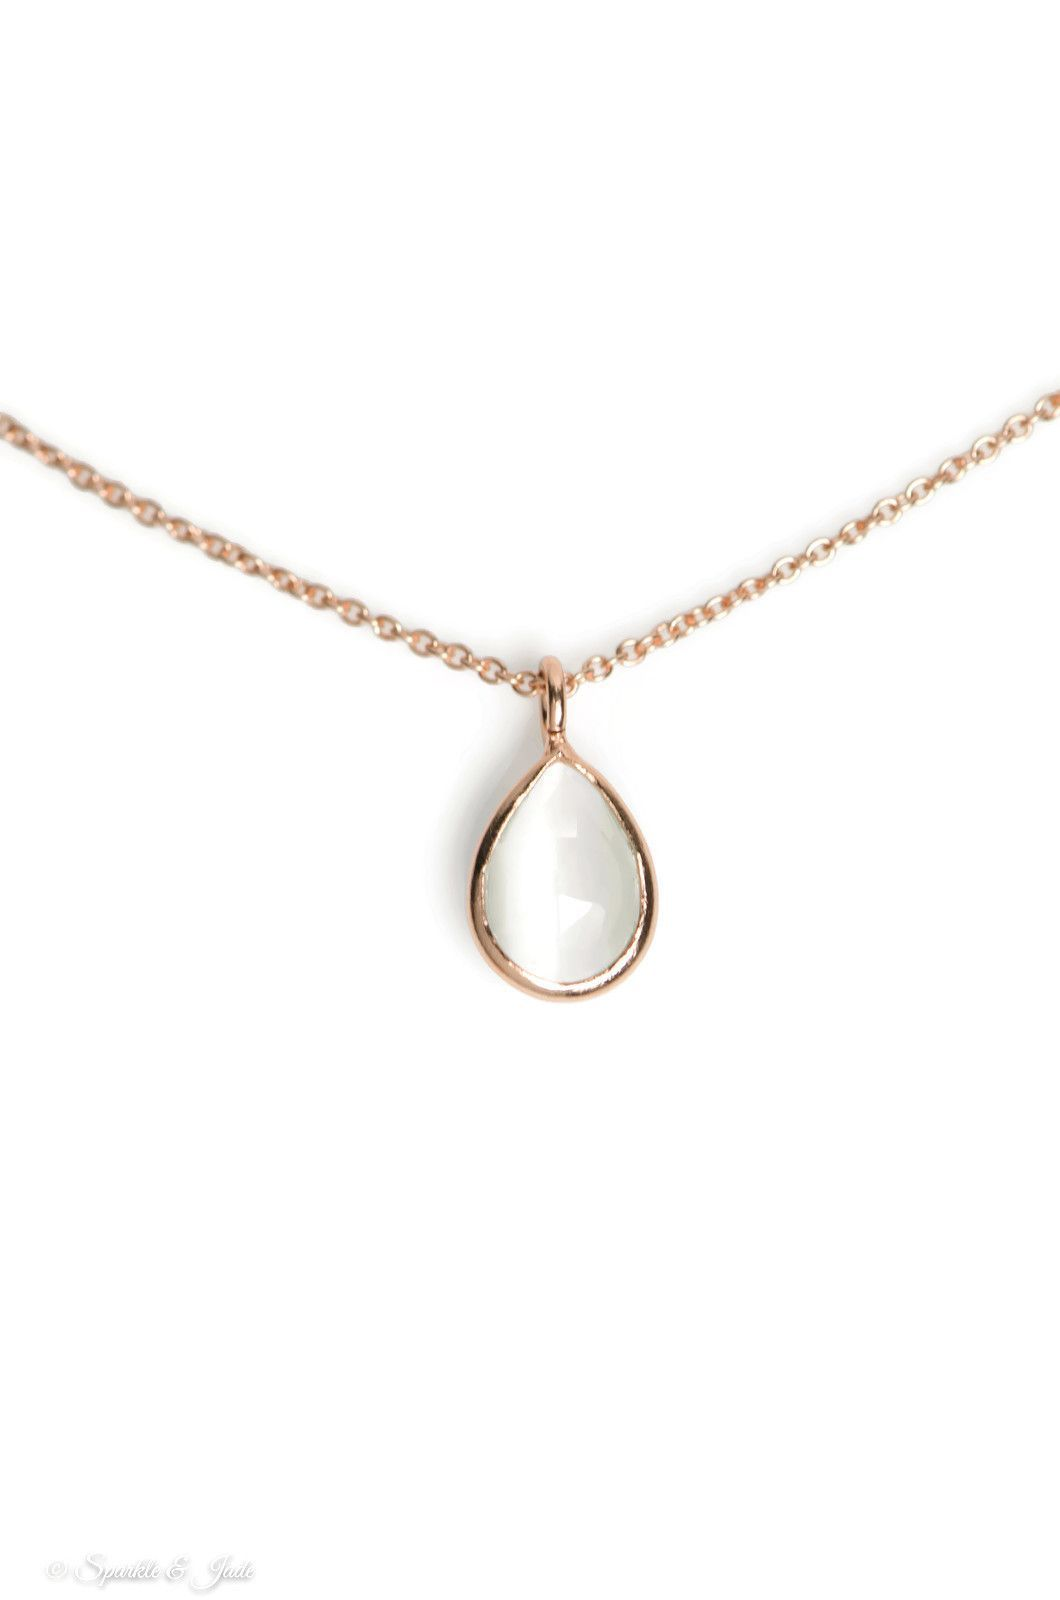 pav products reyter necklace adina pave teardrop open mxd